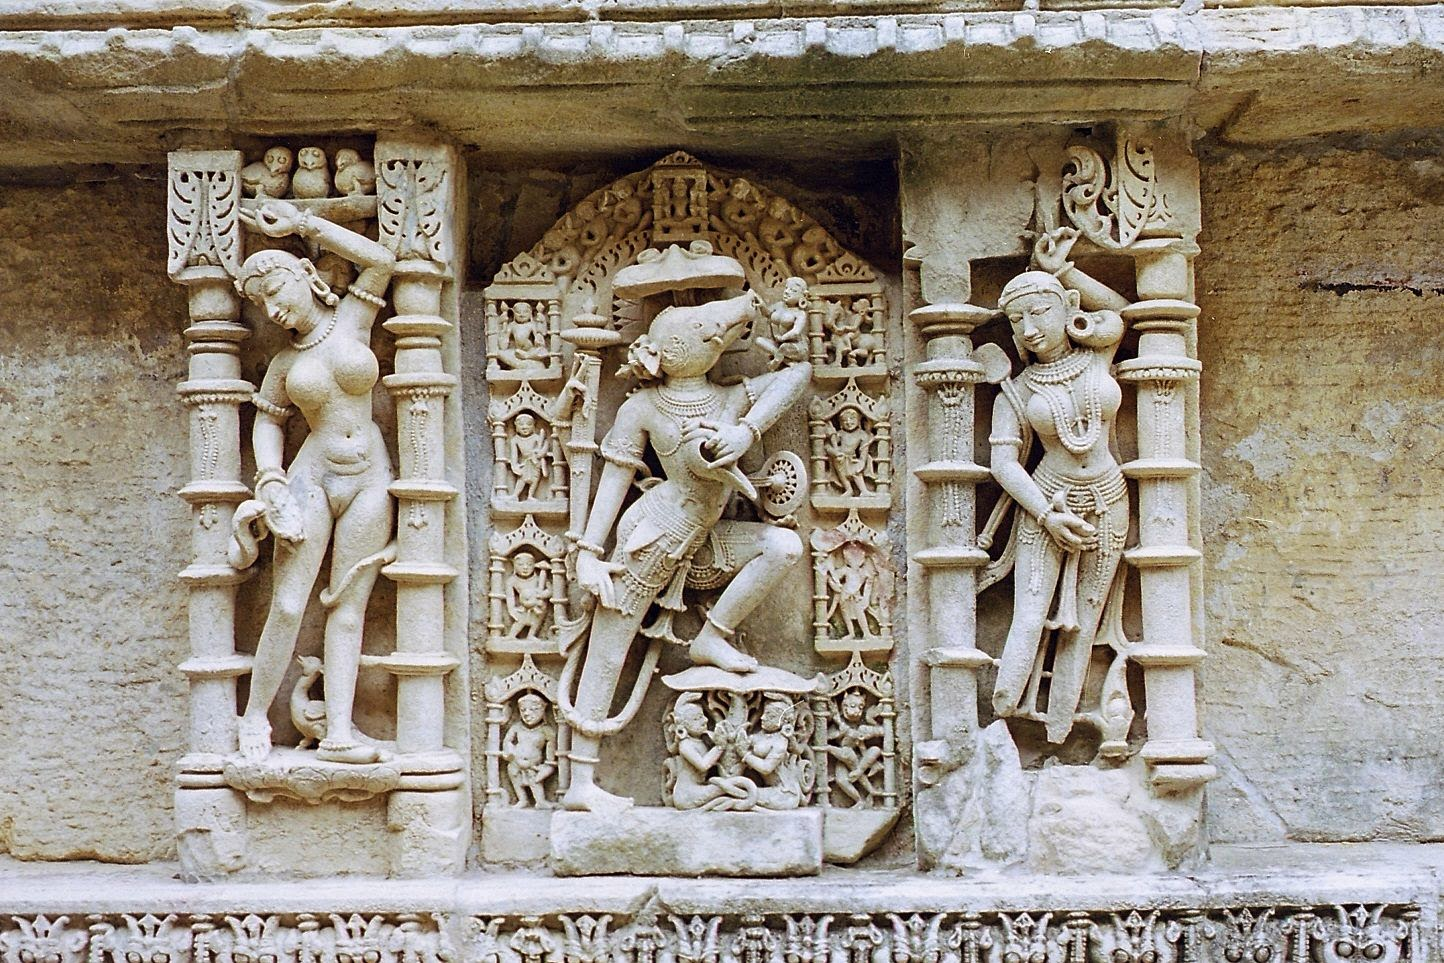 sculptures of Vishnu at Rani ki Vav in Gujrat, India